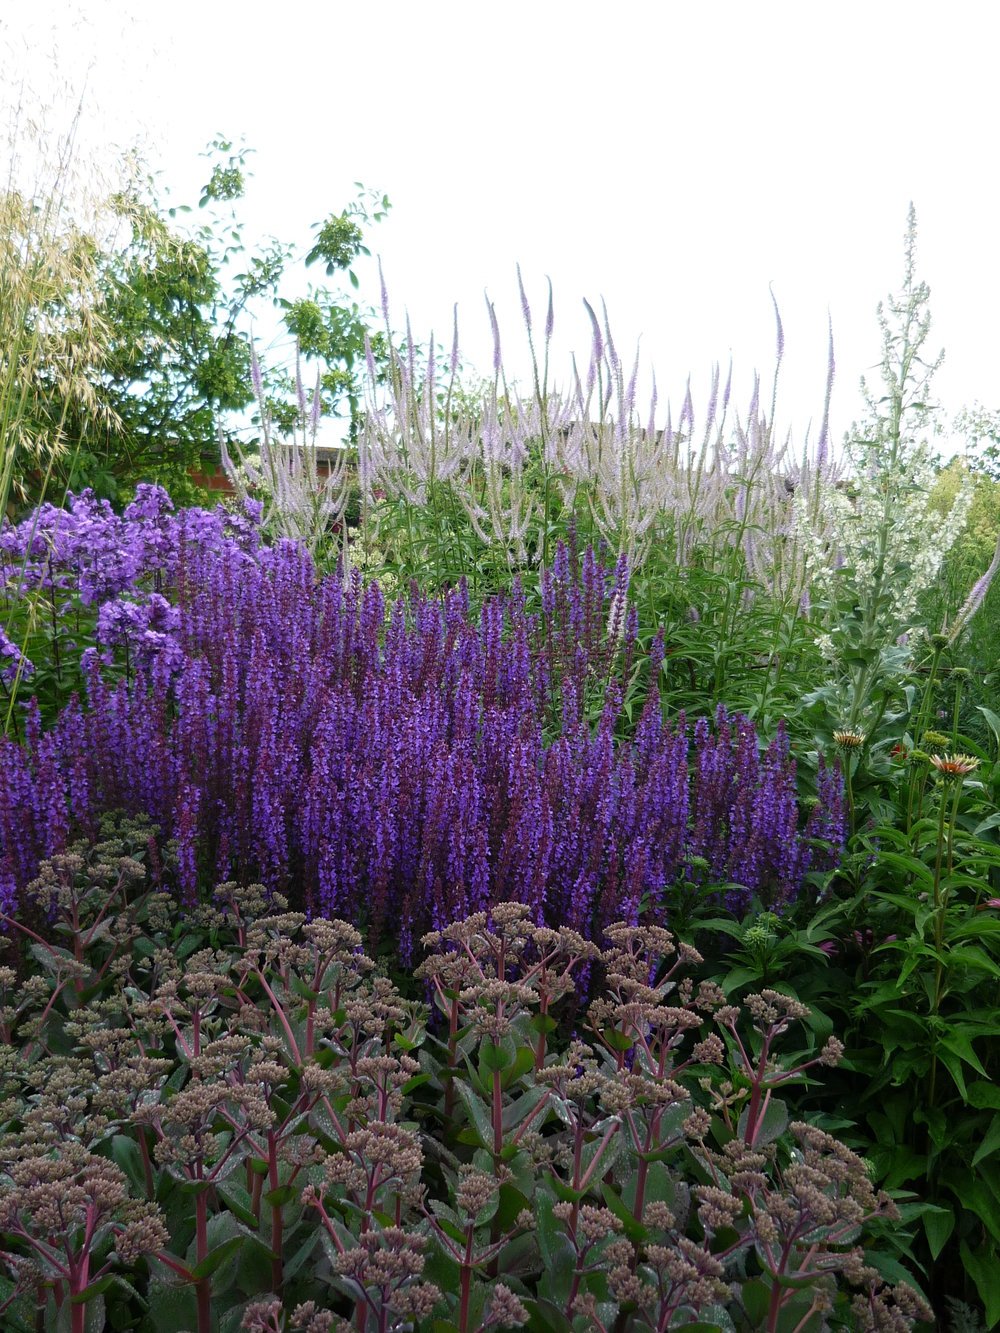 Veronicastrum, Salvia and Sedum